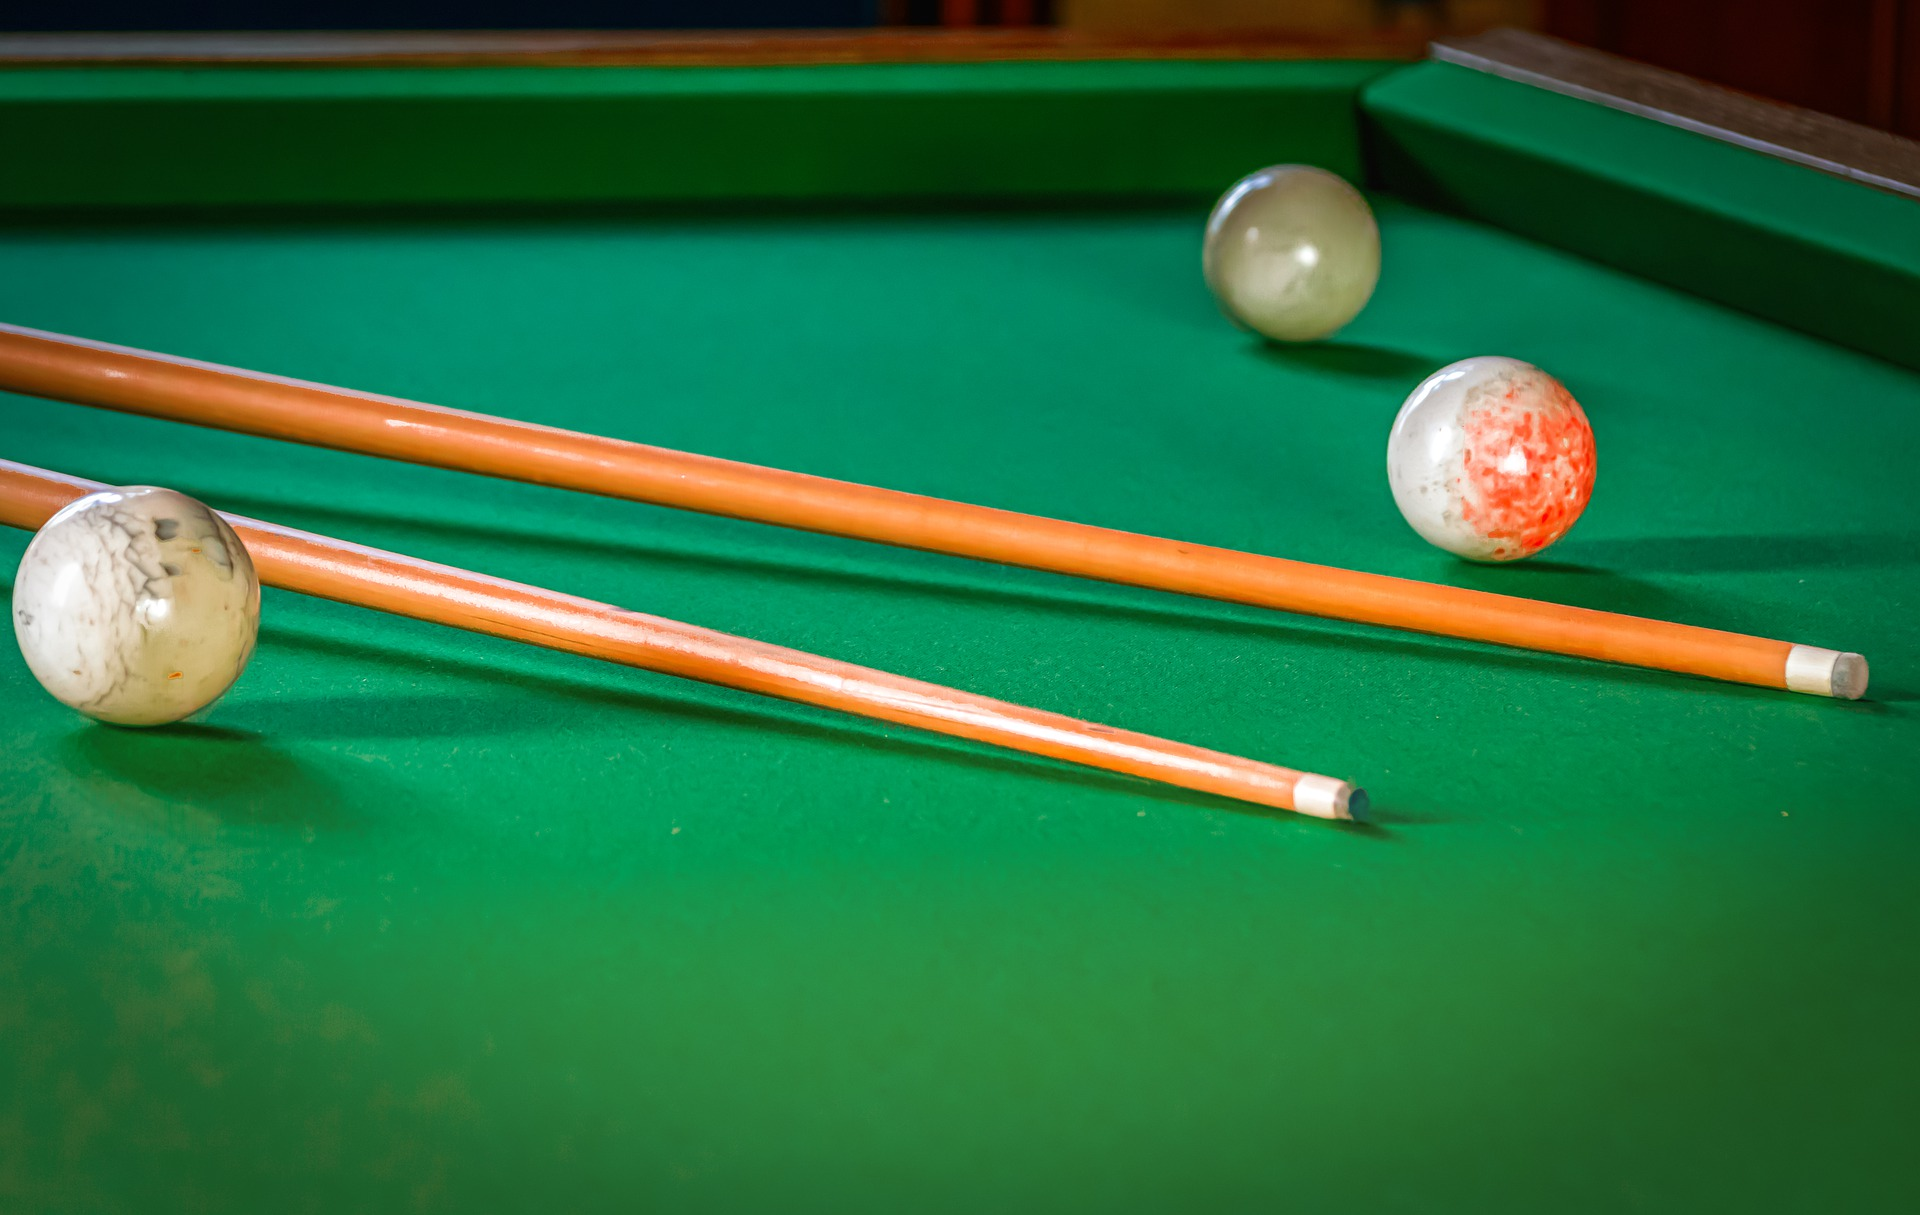 Best pool cues placed on a table